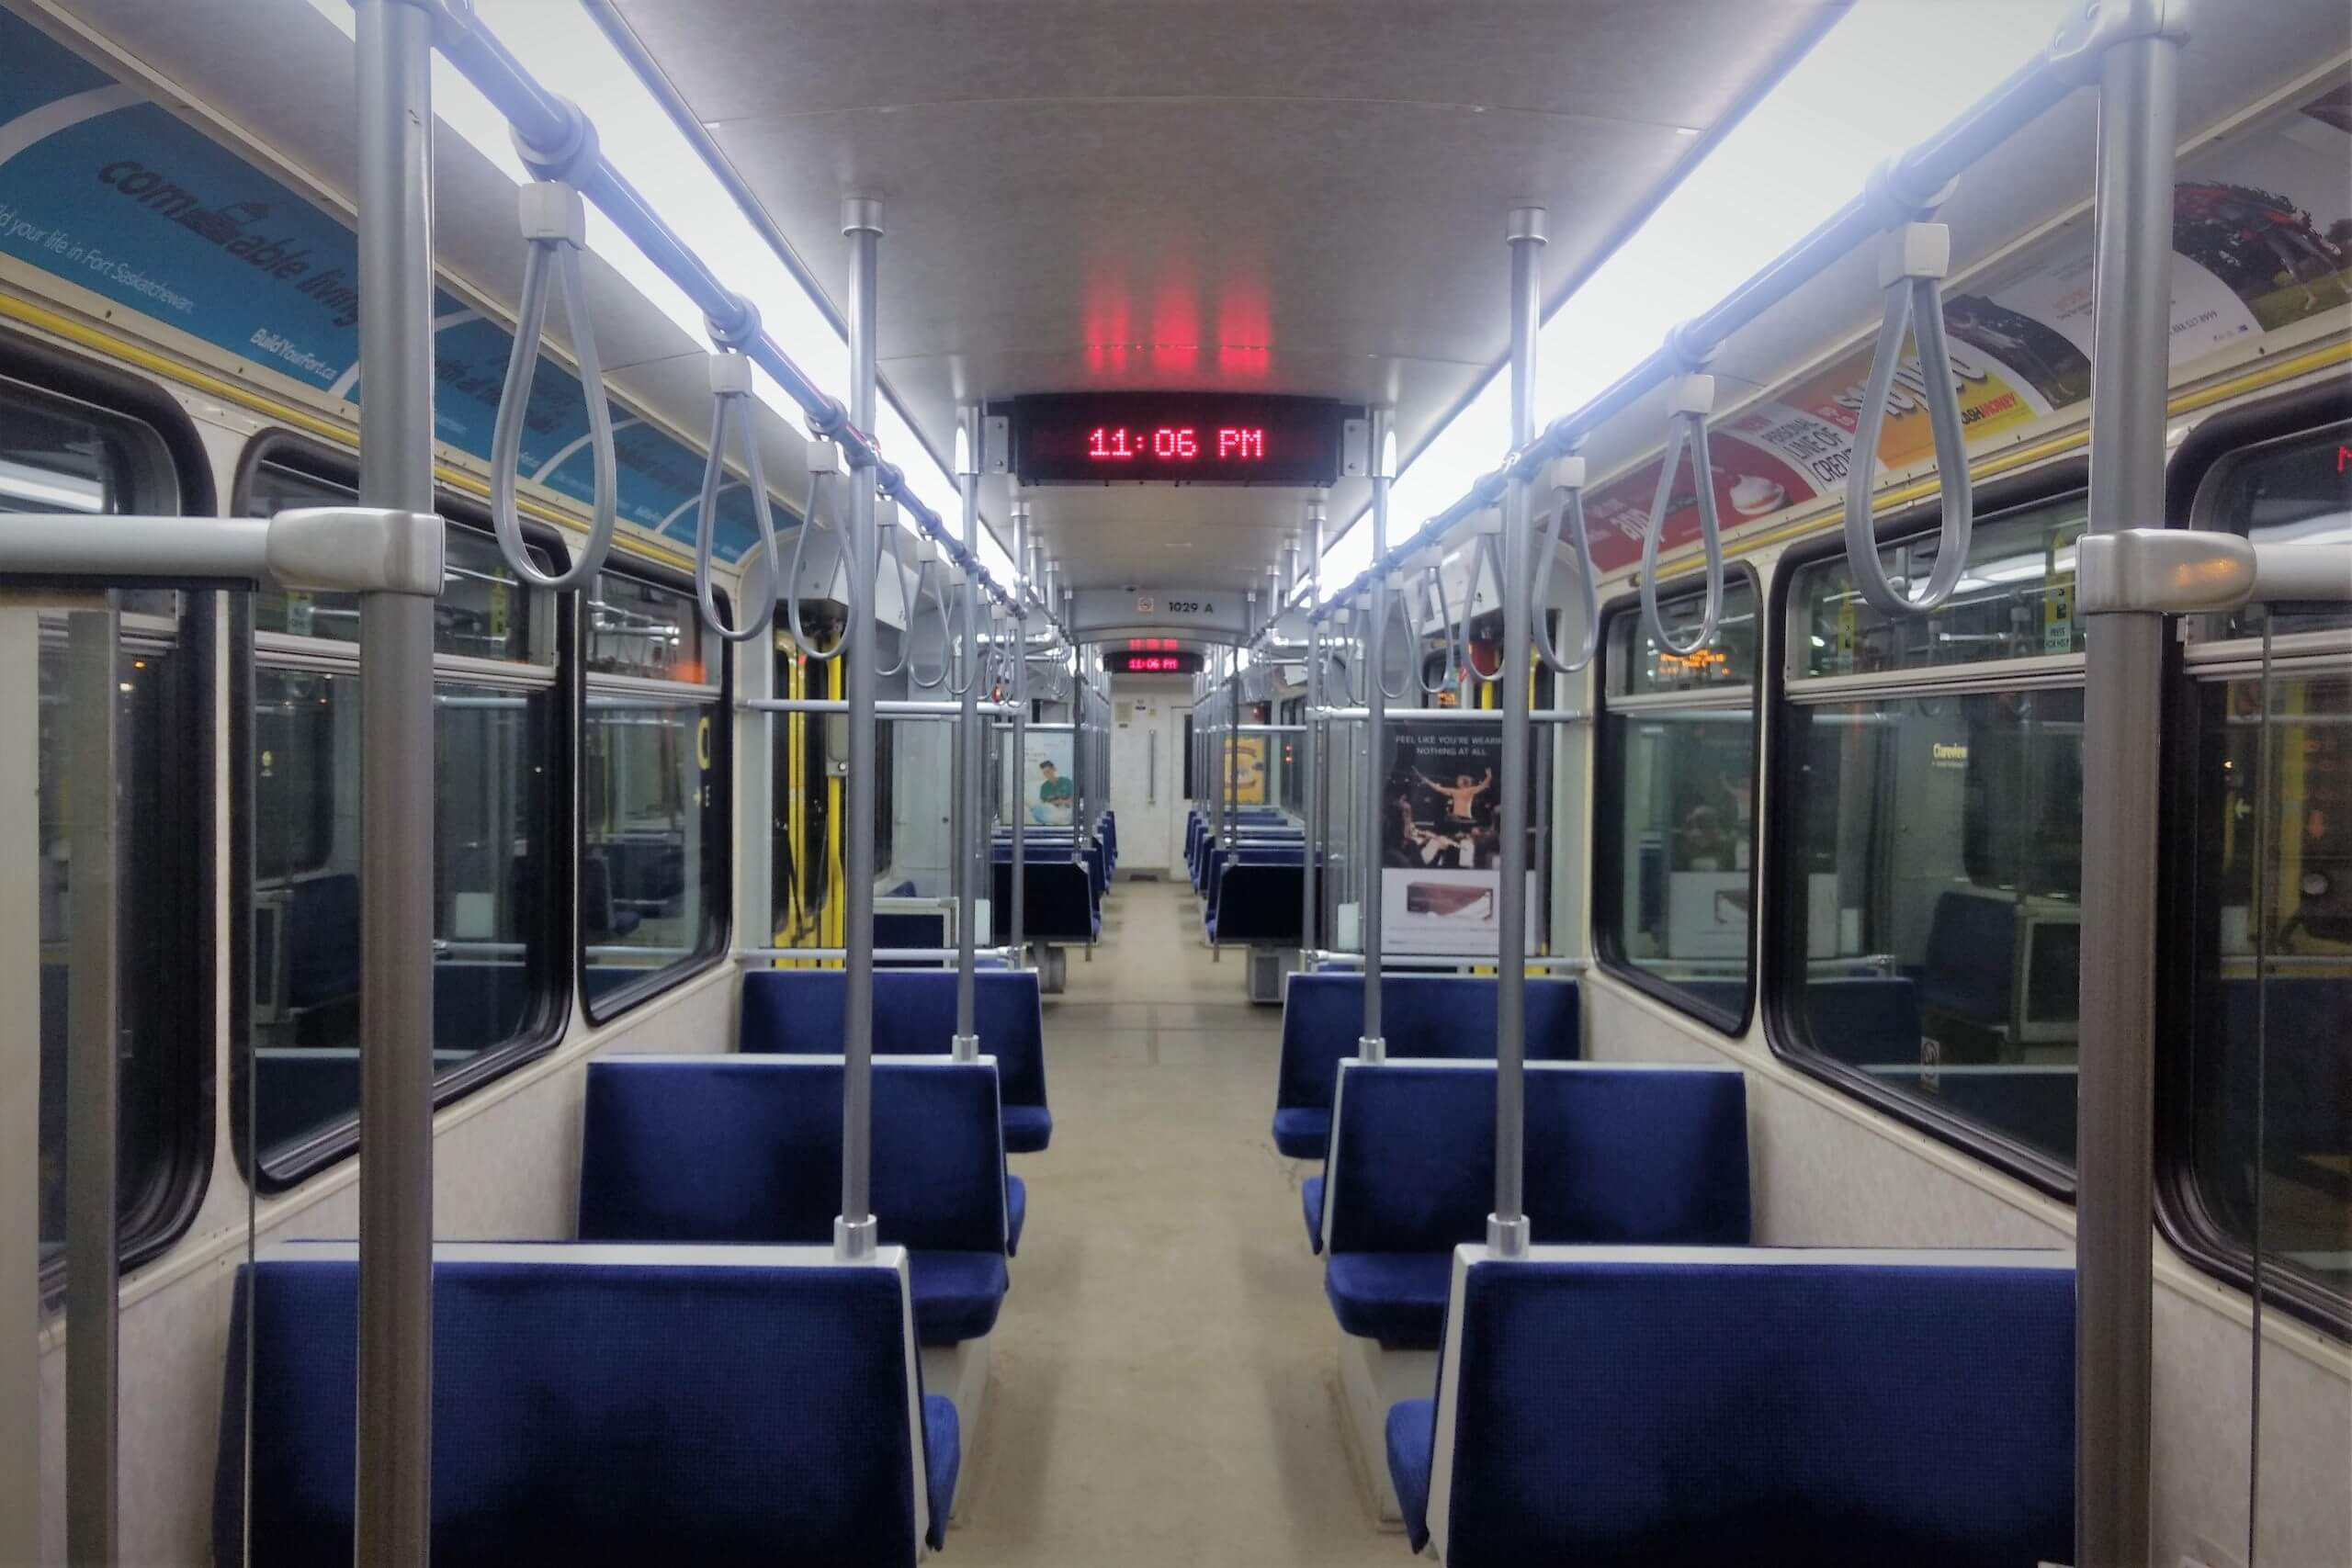 Surrey-Newton-Guildford LRT to increase transit use by less than 1%